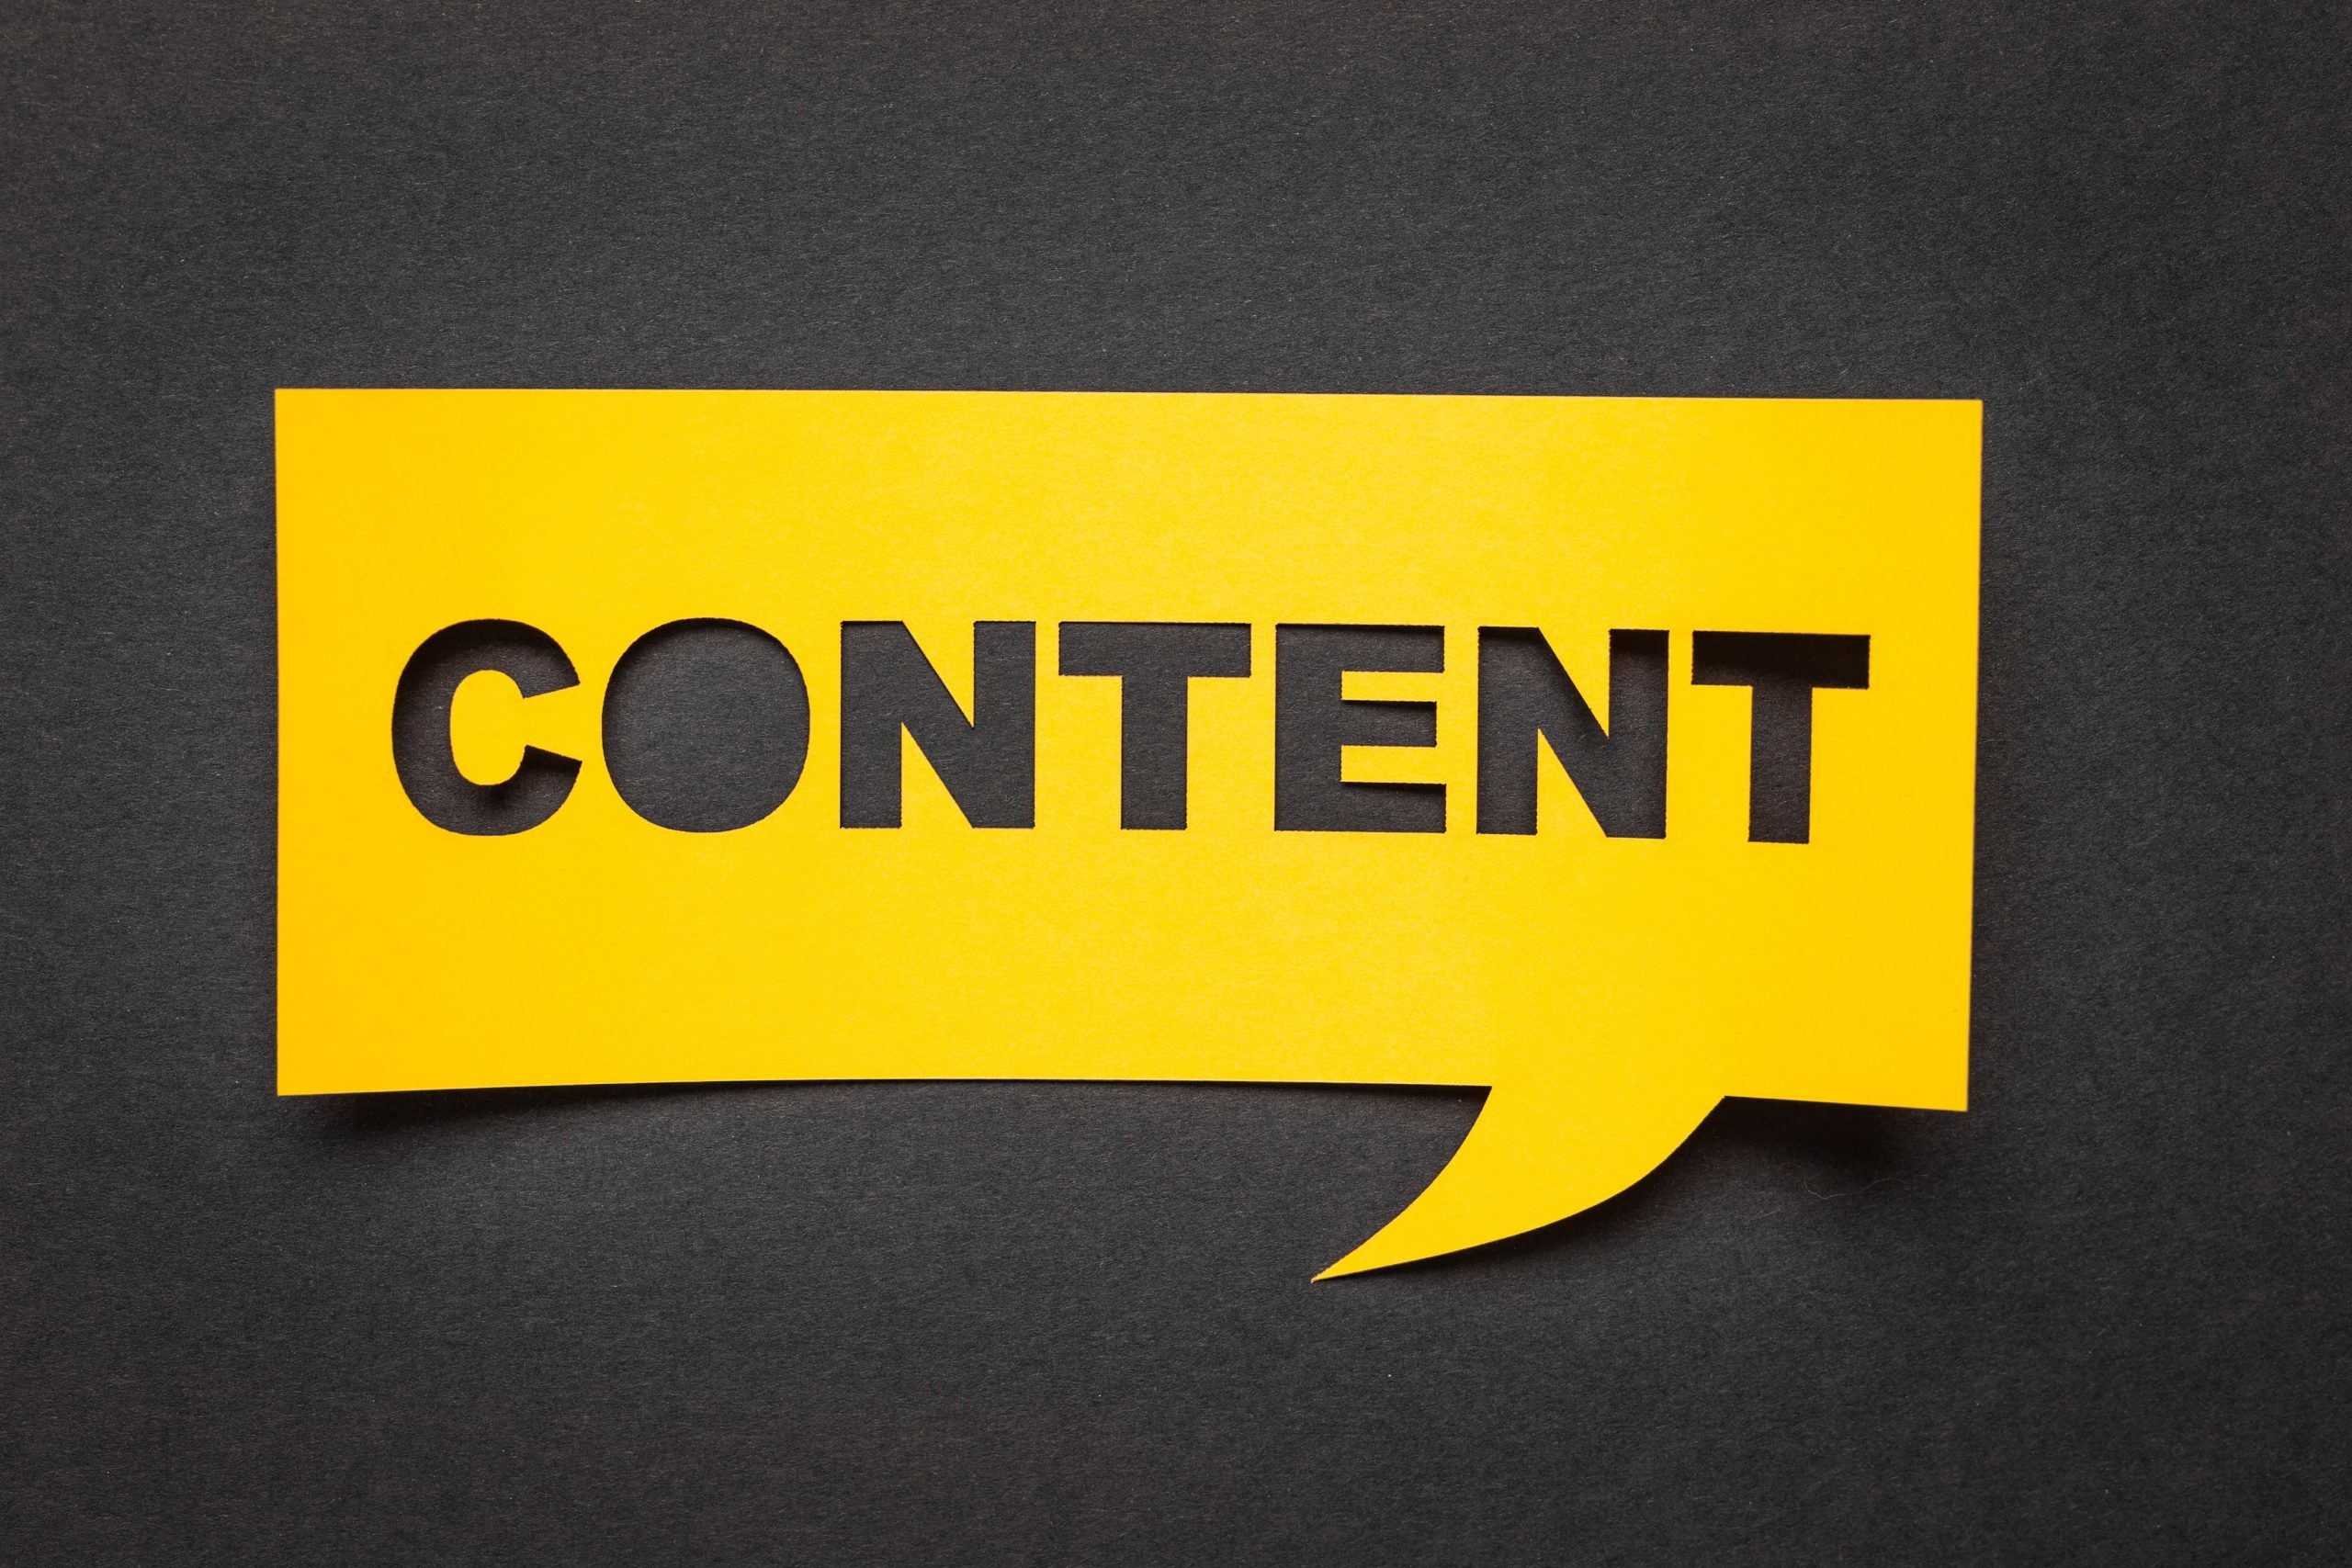 Reasons for Creating Fresh Content